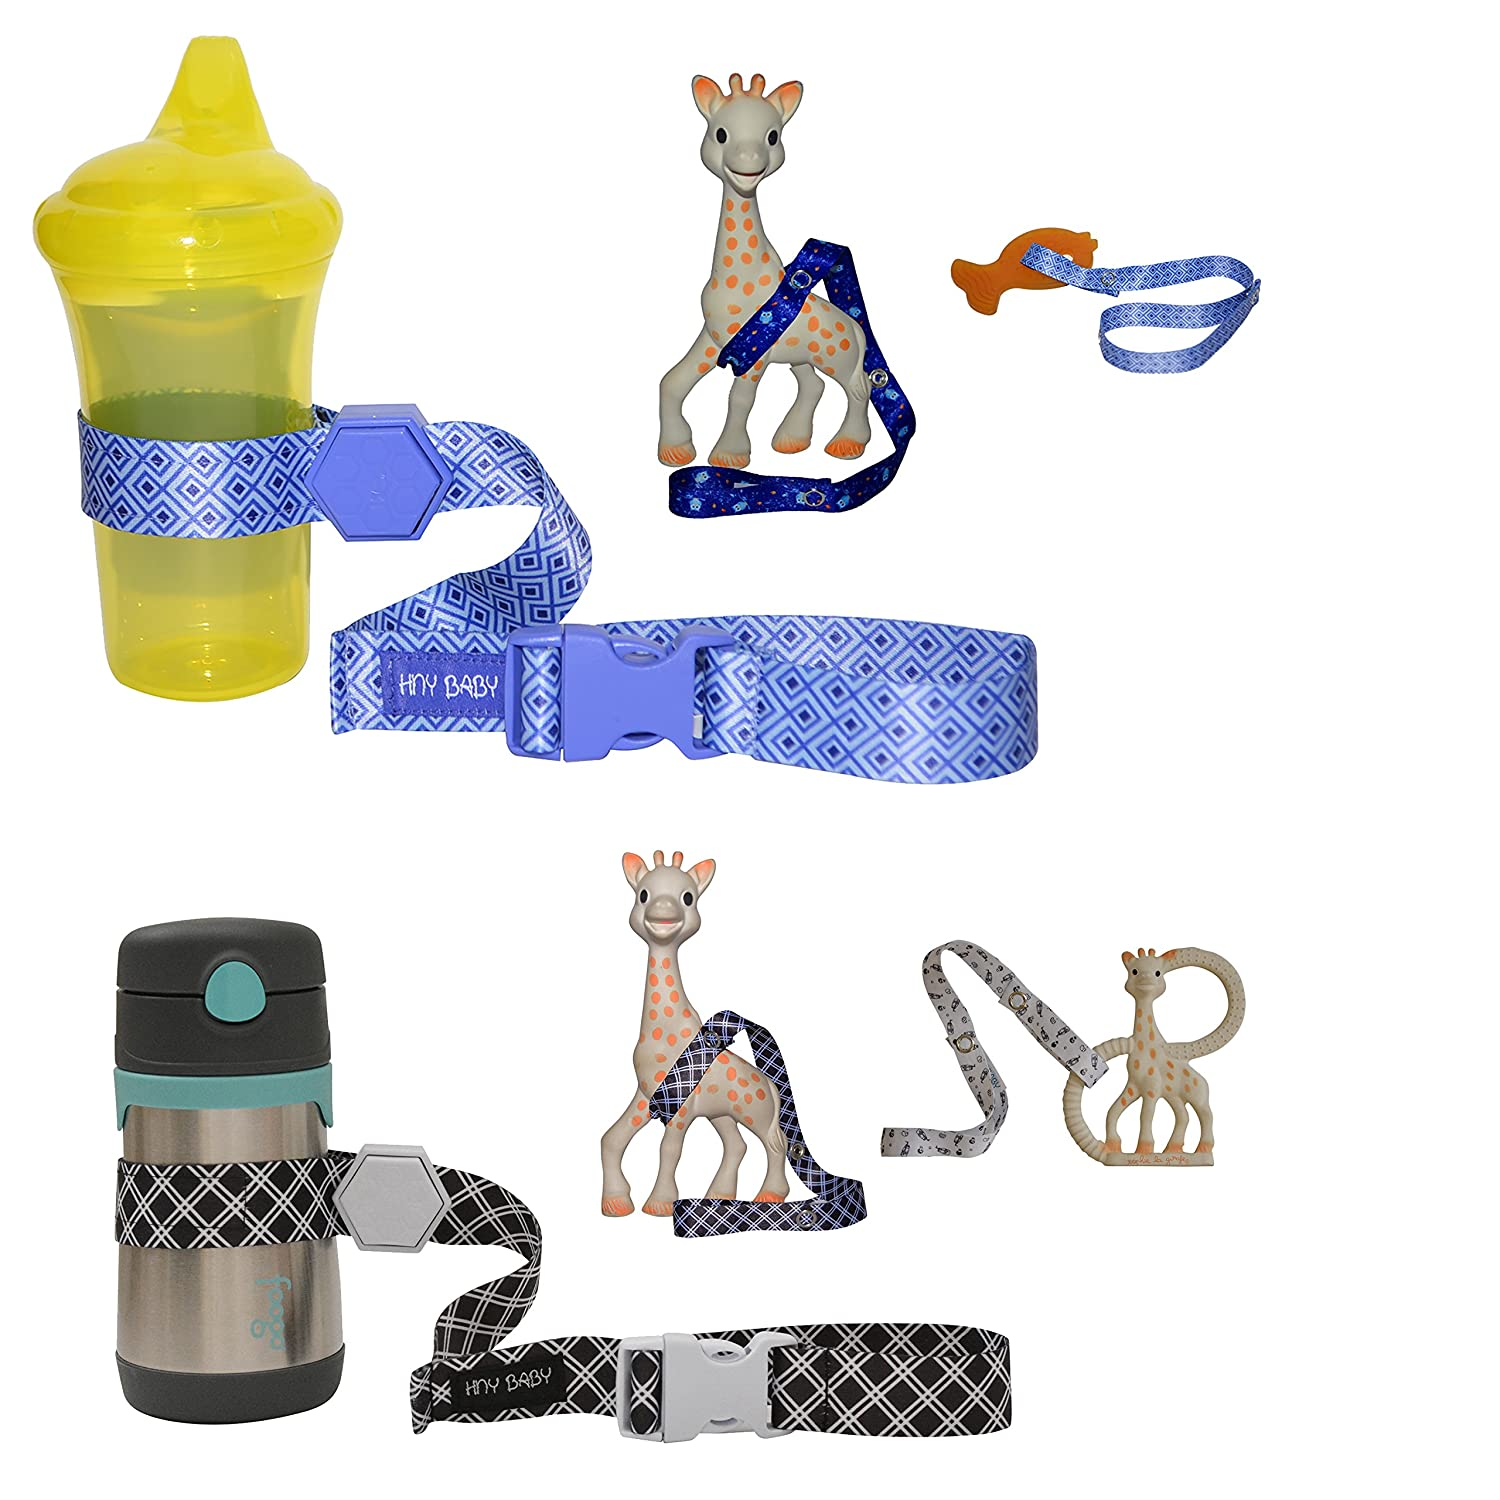 Blue//Yellow HnyBaby Sippy Cup Strap for Baby Bottle and Toy Strap 4 Pack Sippy Cup Holder with Rubber Grip for Stroller /& Highchair